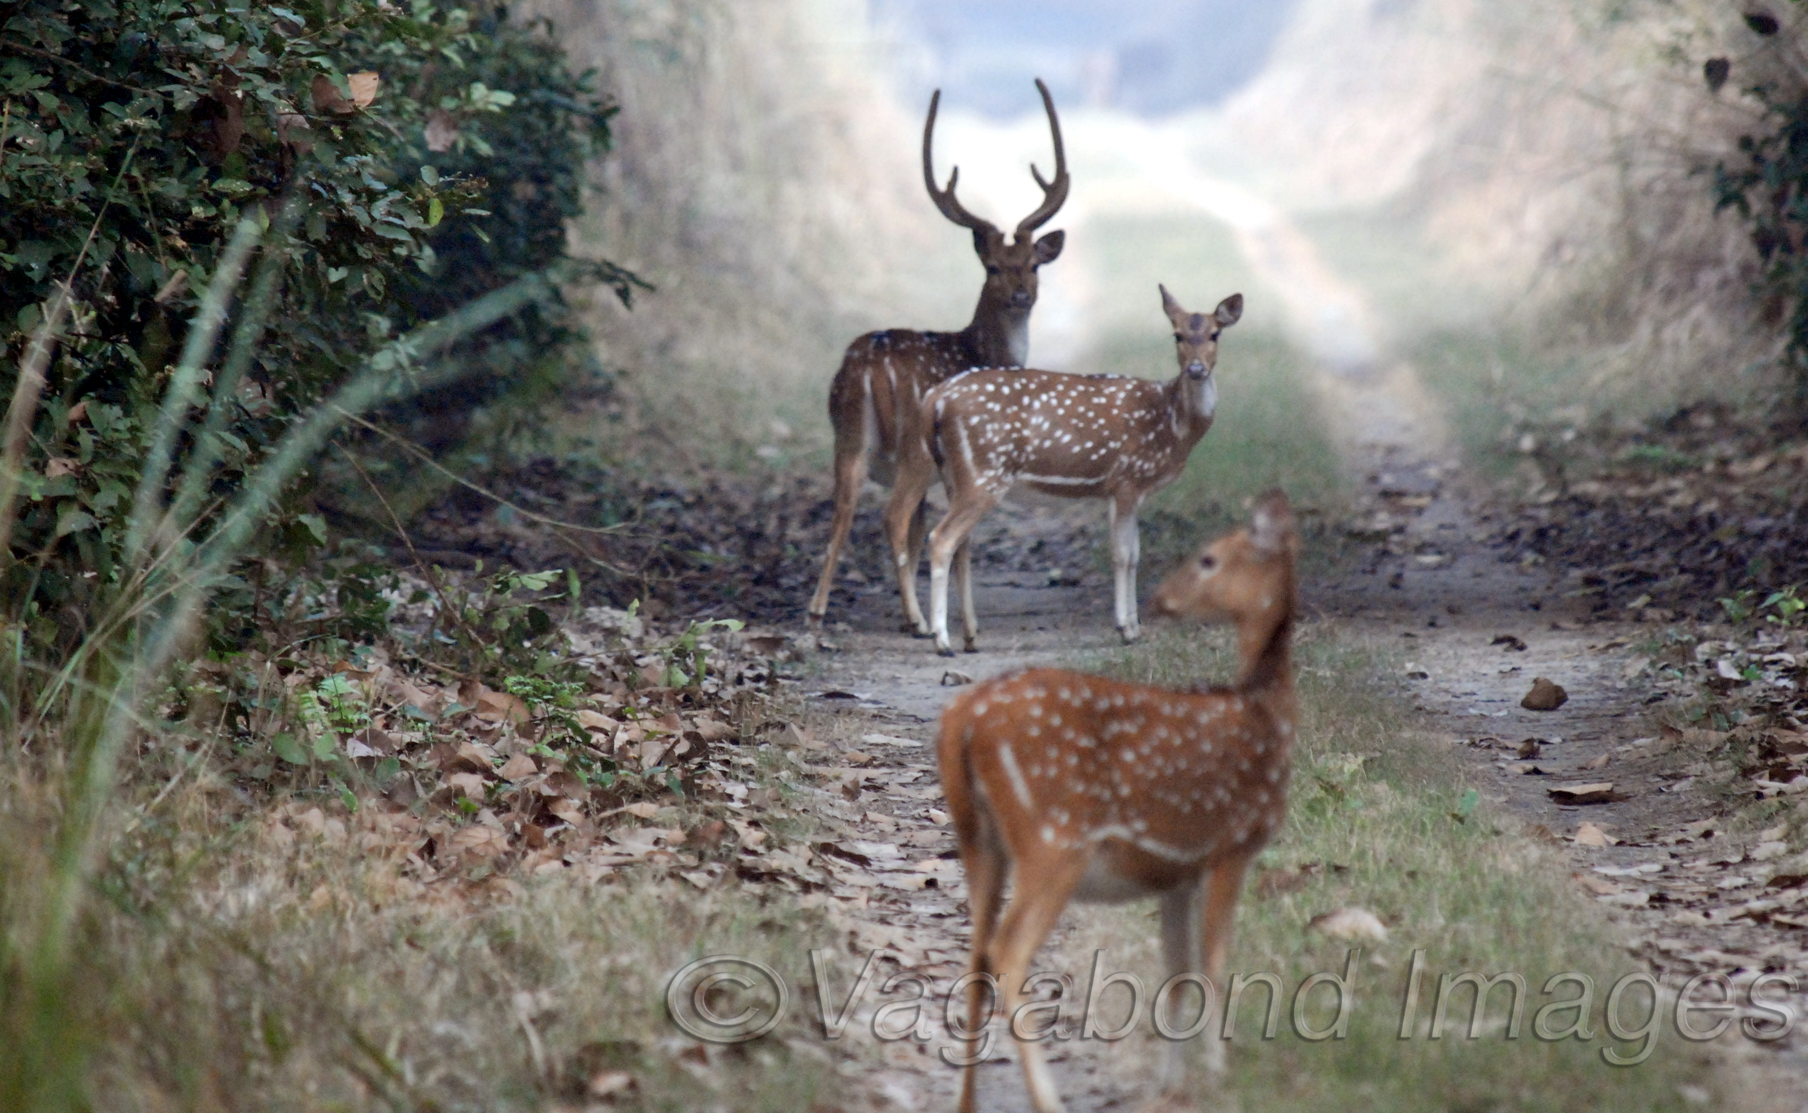 spotted deers are most easy to spot and click in Indian forests